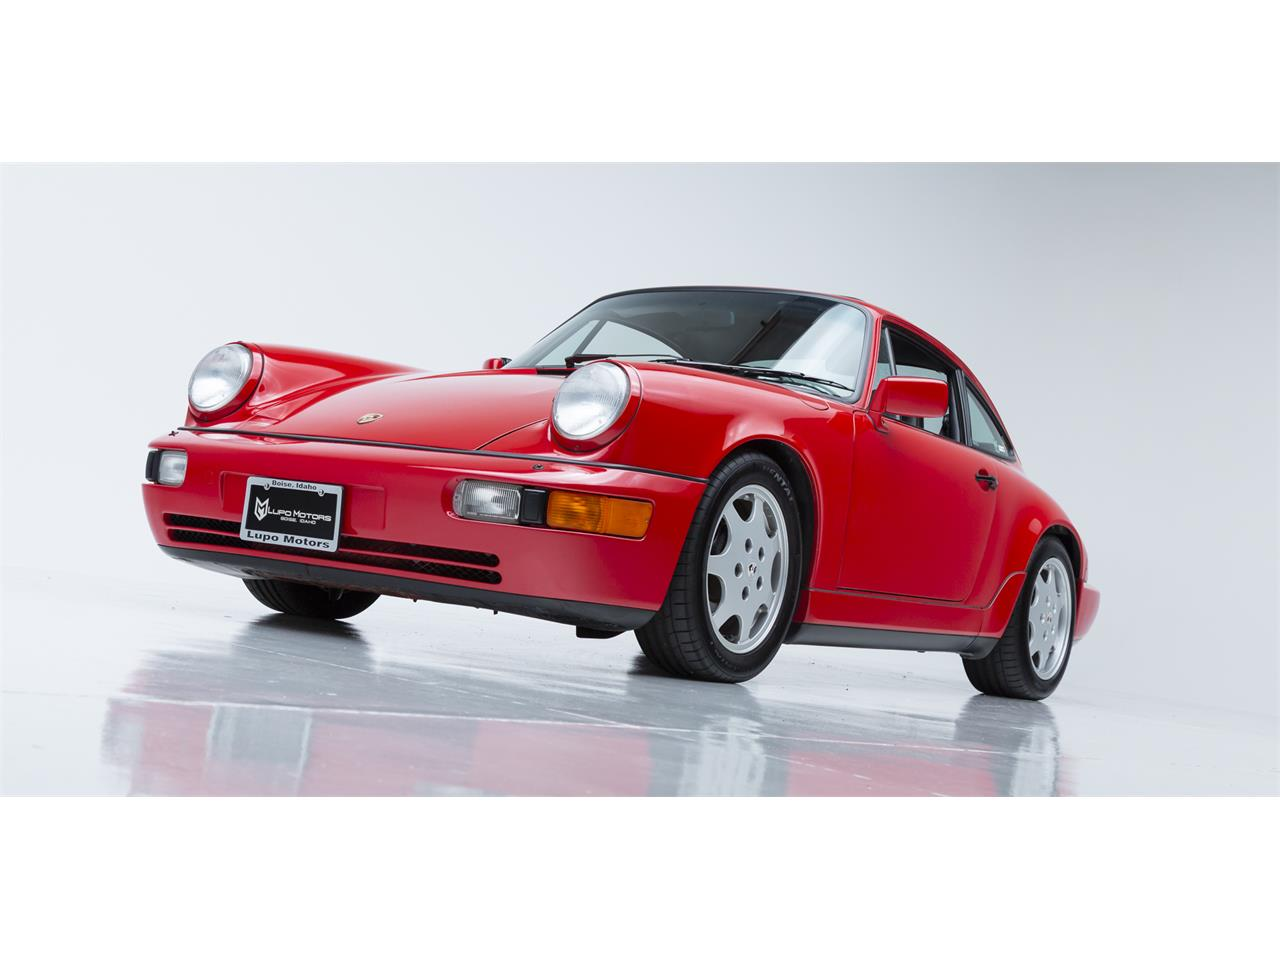 1989 Porsche 911 Carrera (CC-1269539) for sale in Boise, Idaho